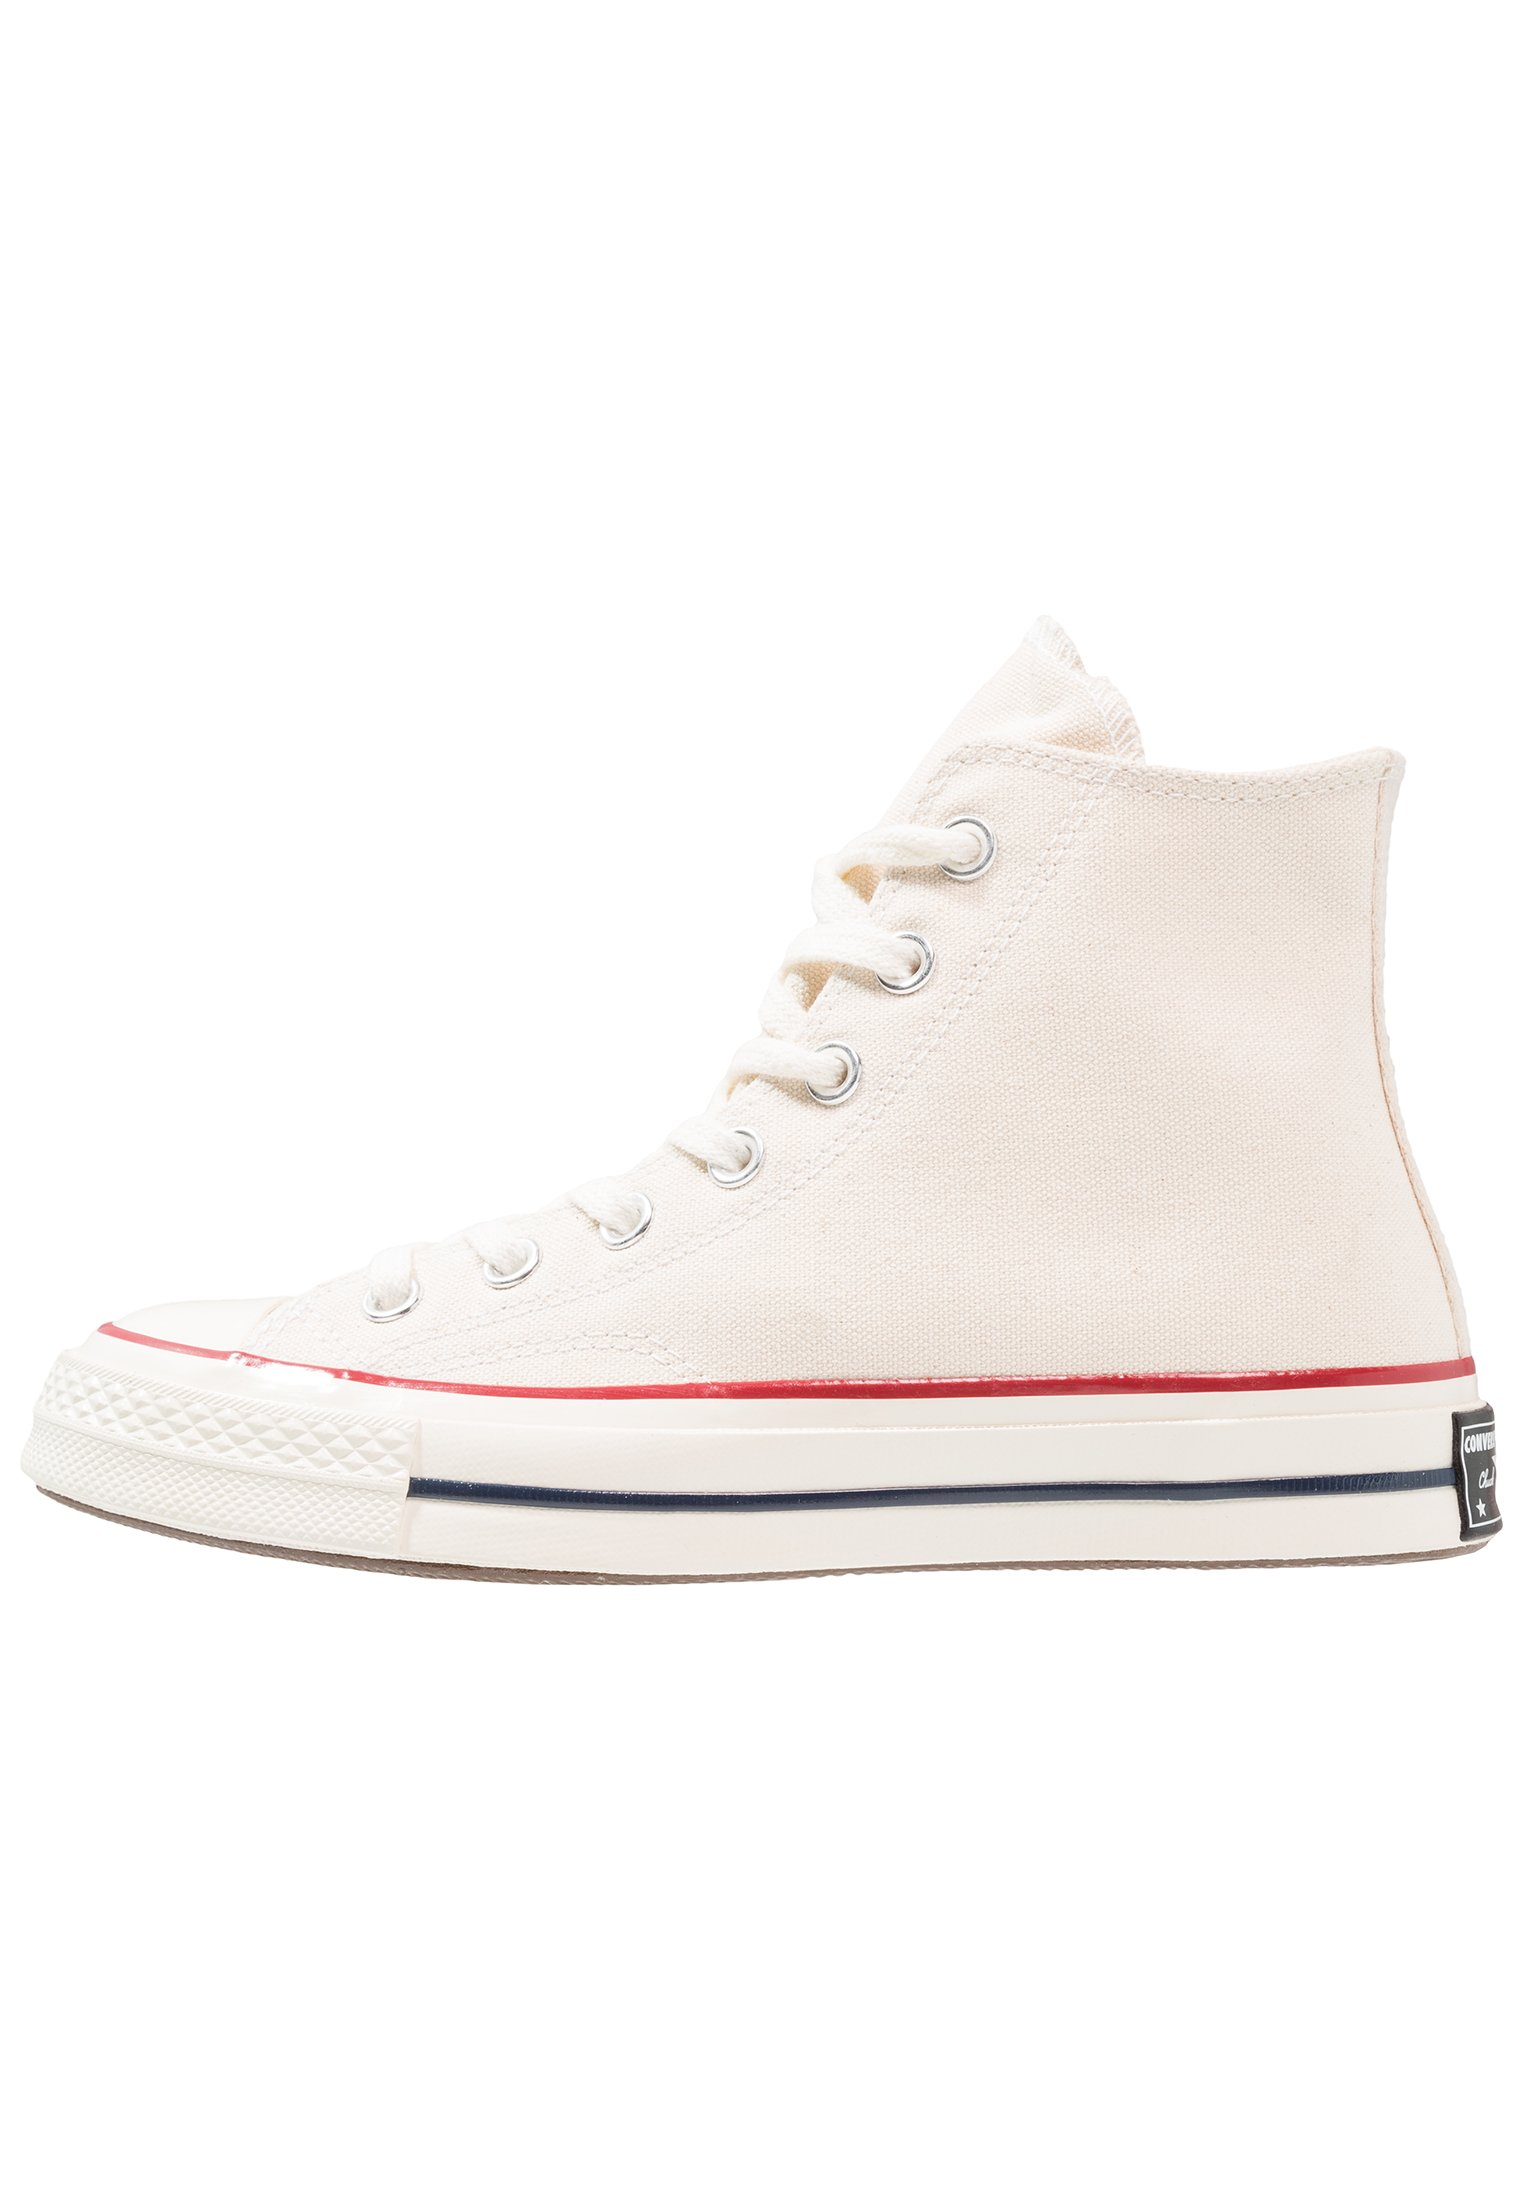 converse all star homme pastilles